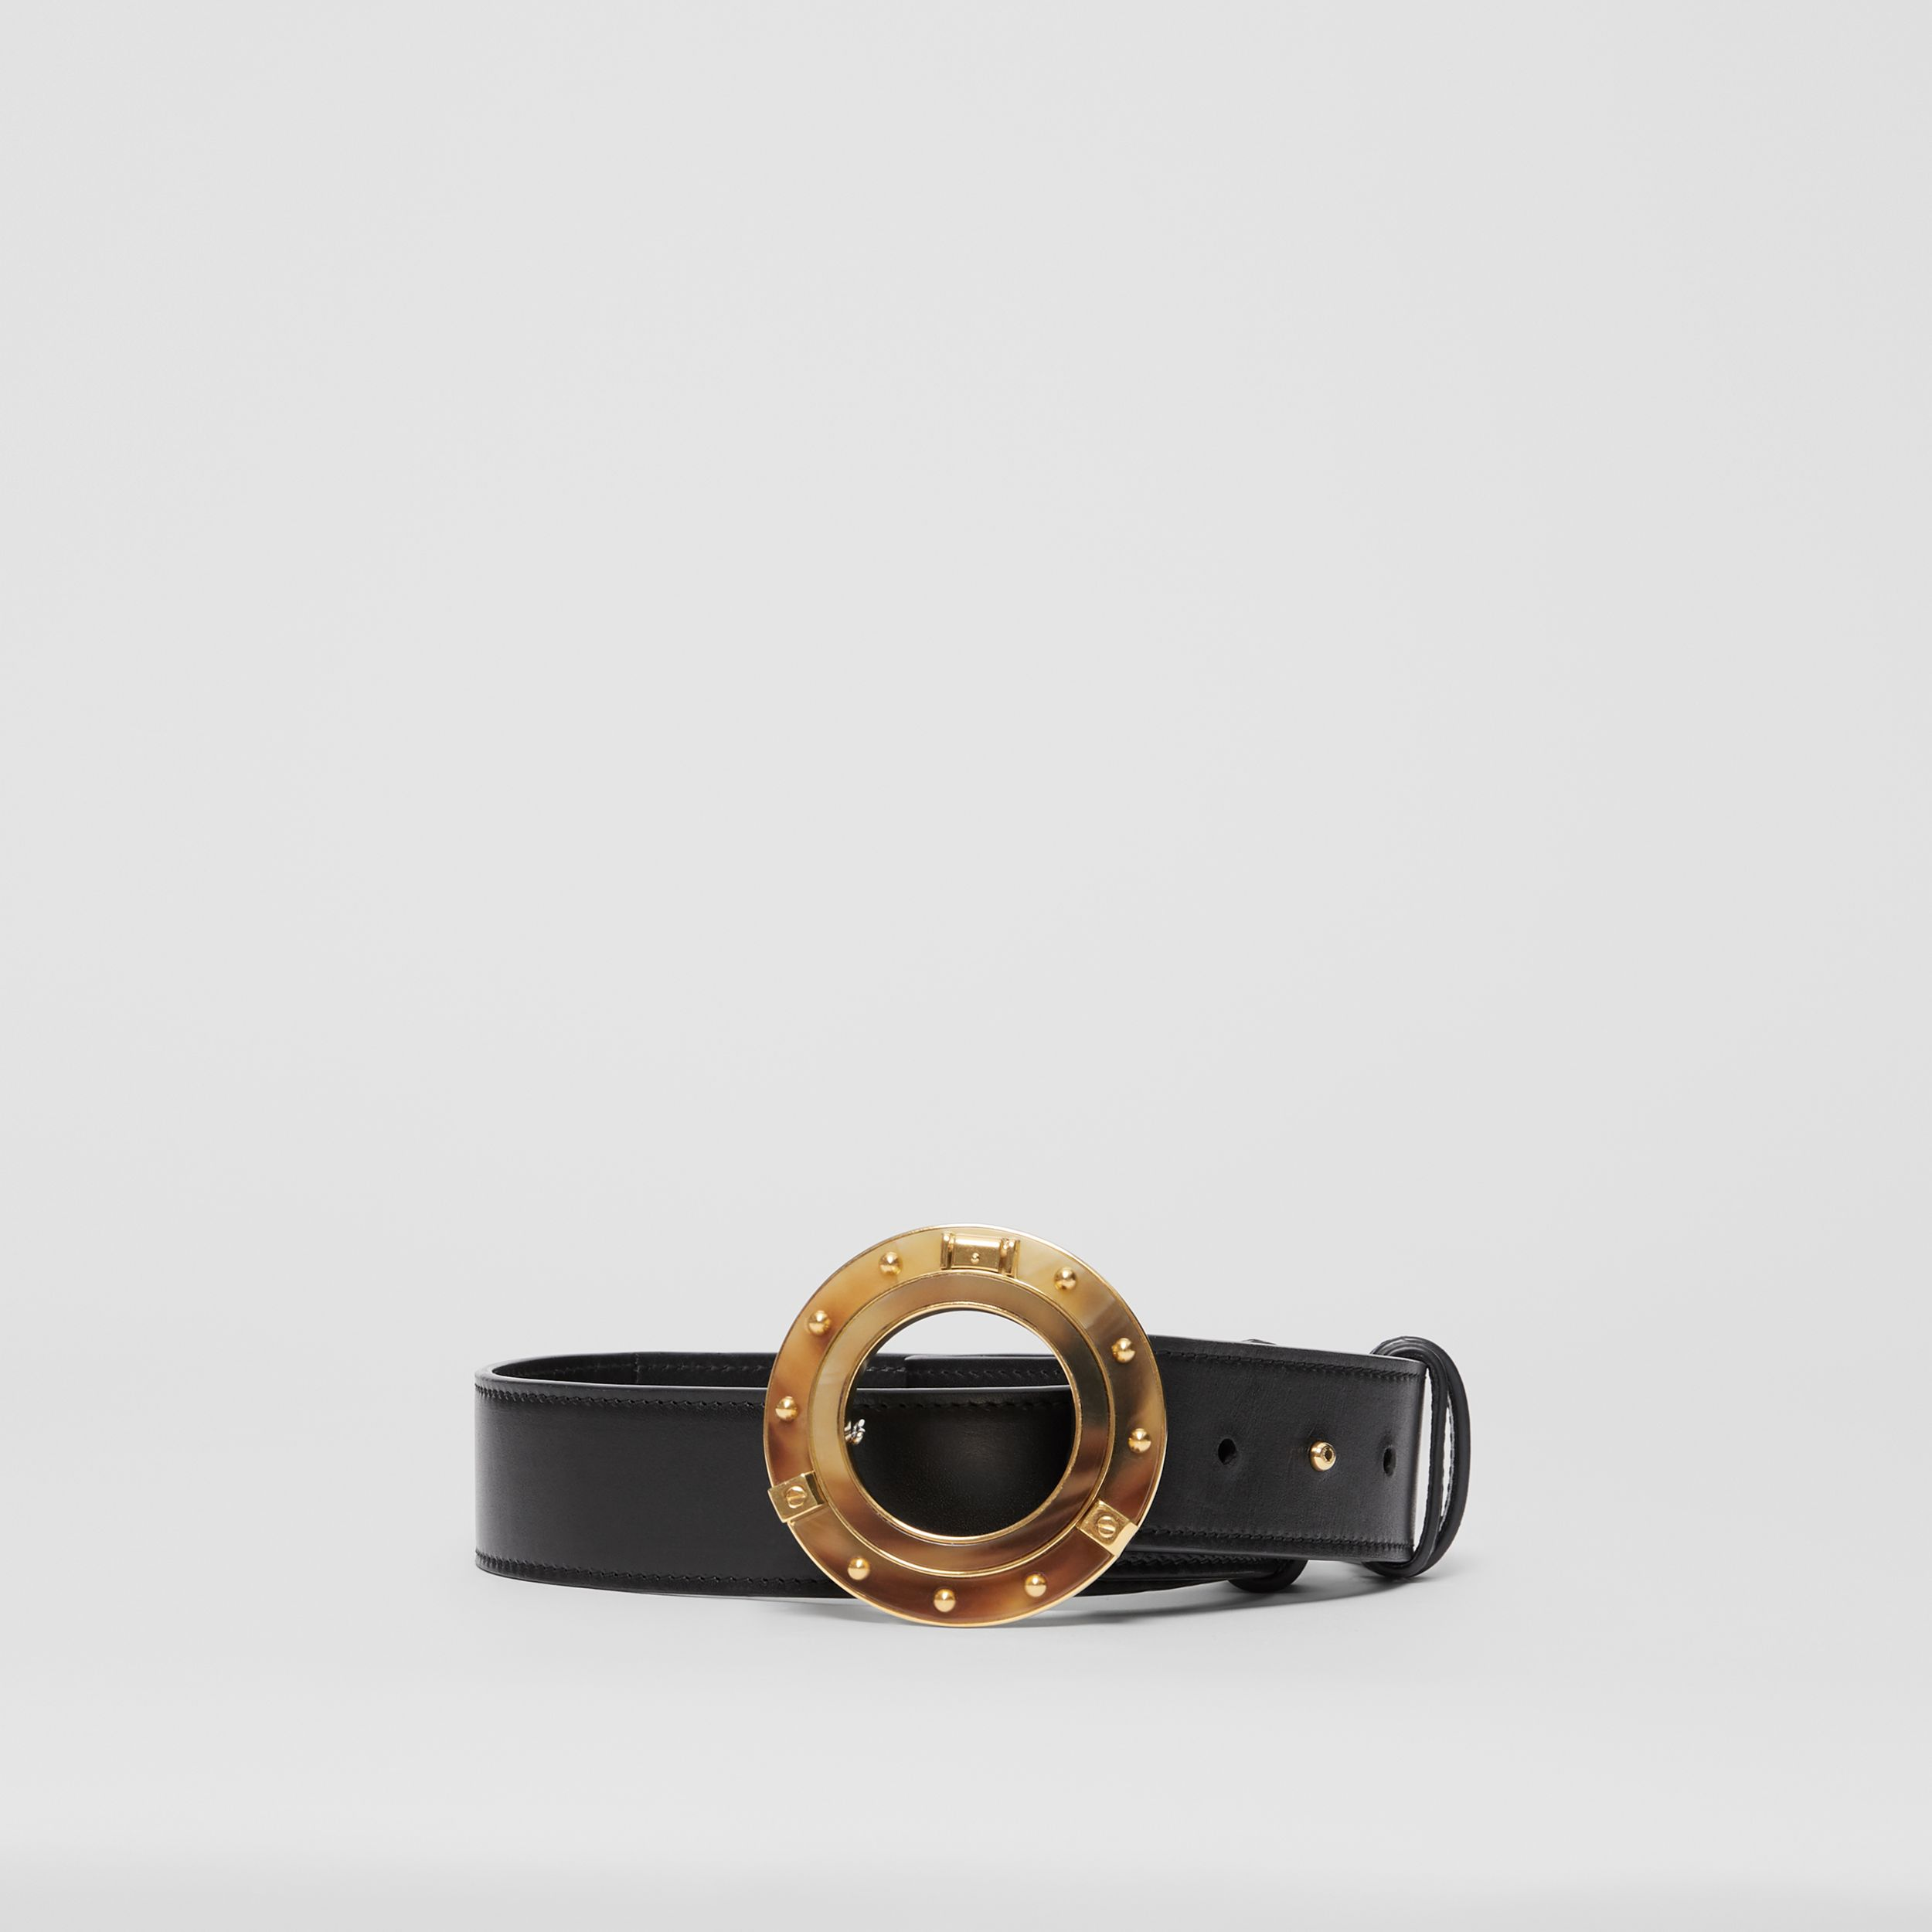 Porthole Buckle Leather Belt in Black | Burberry - 4